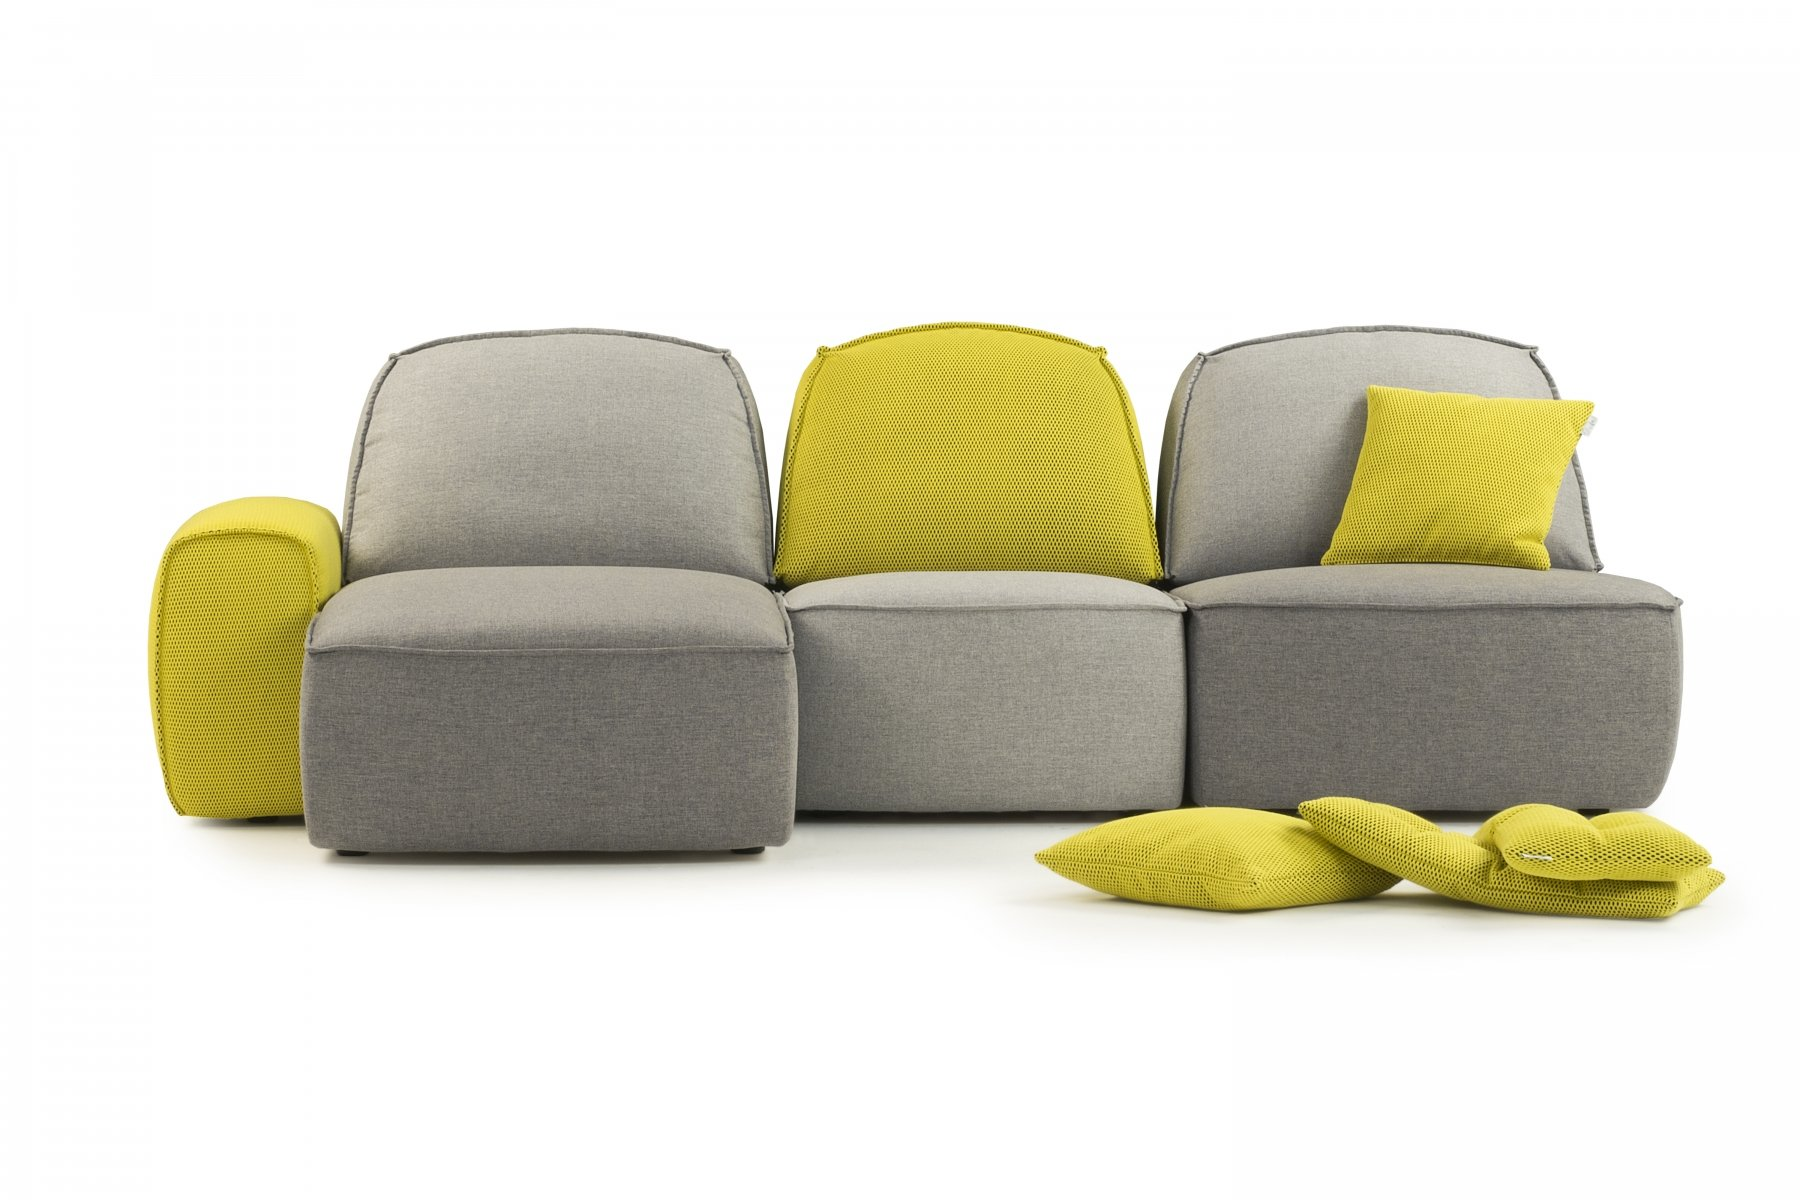 Lazy is a soft-shaped, cozy sofa which can create multiple combinations